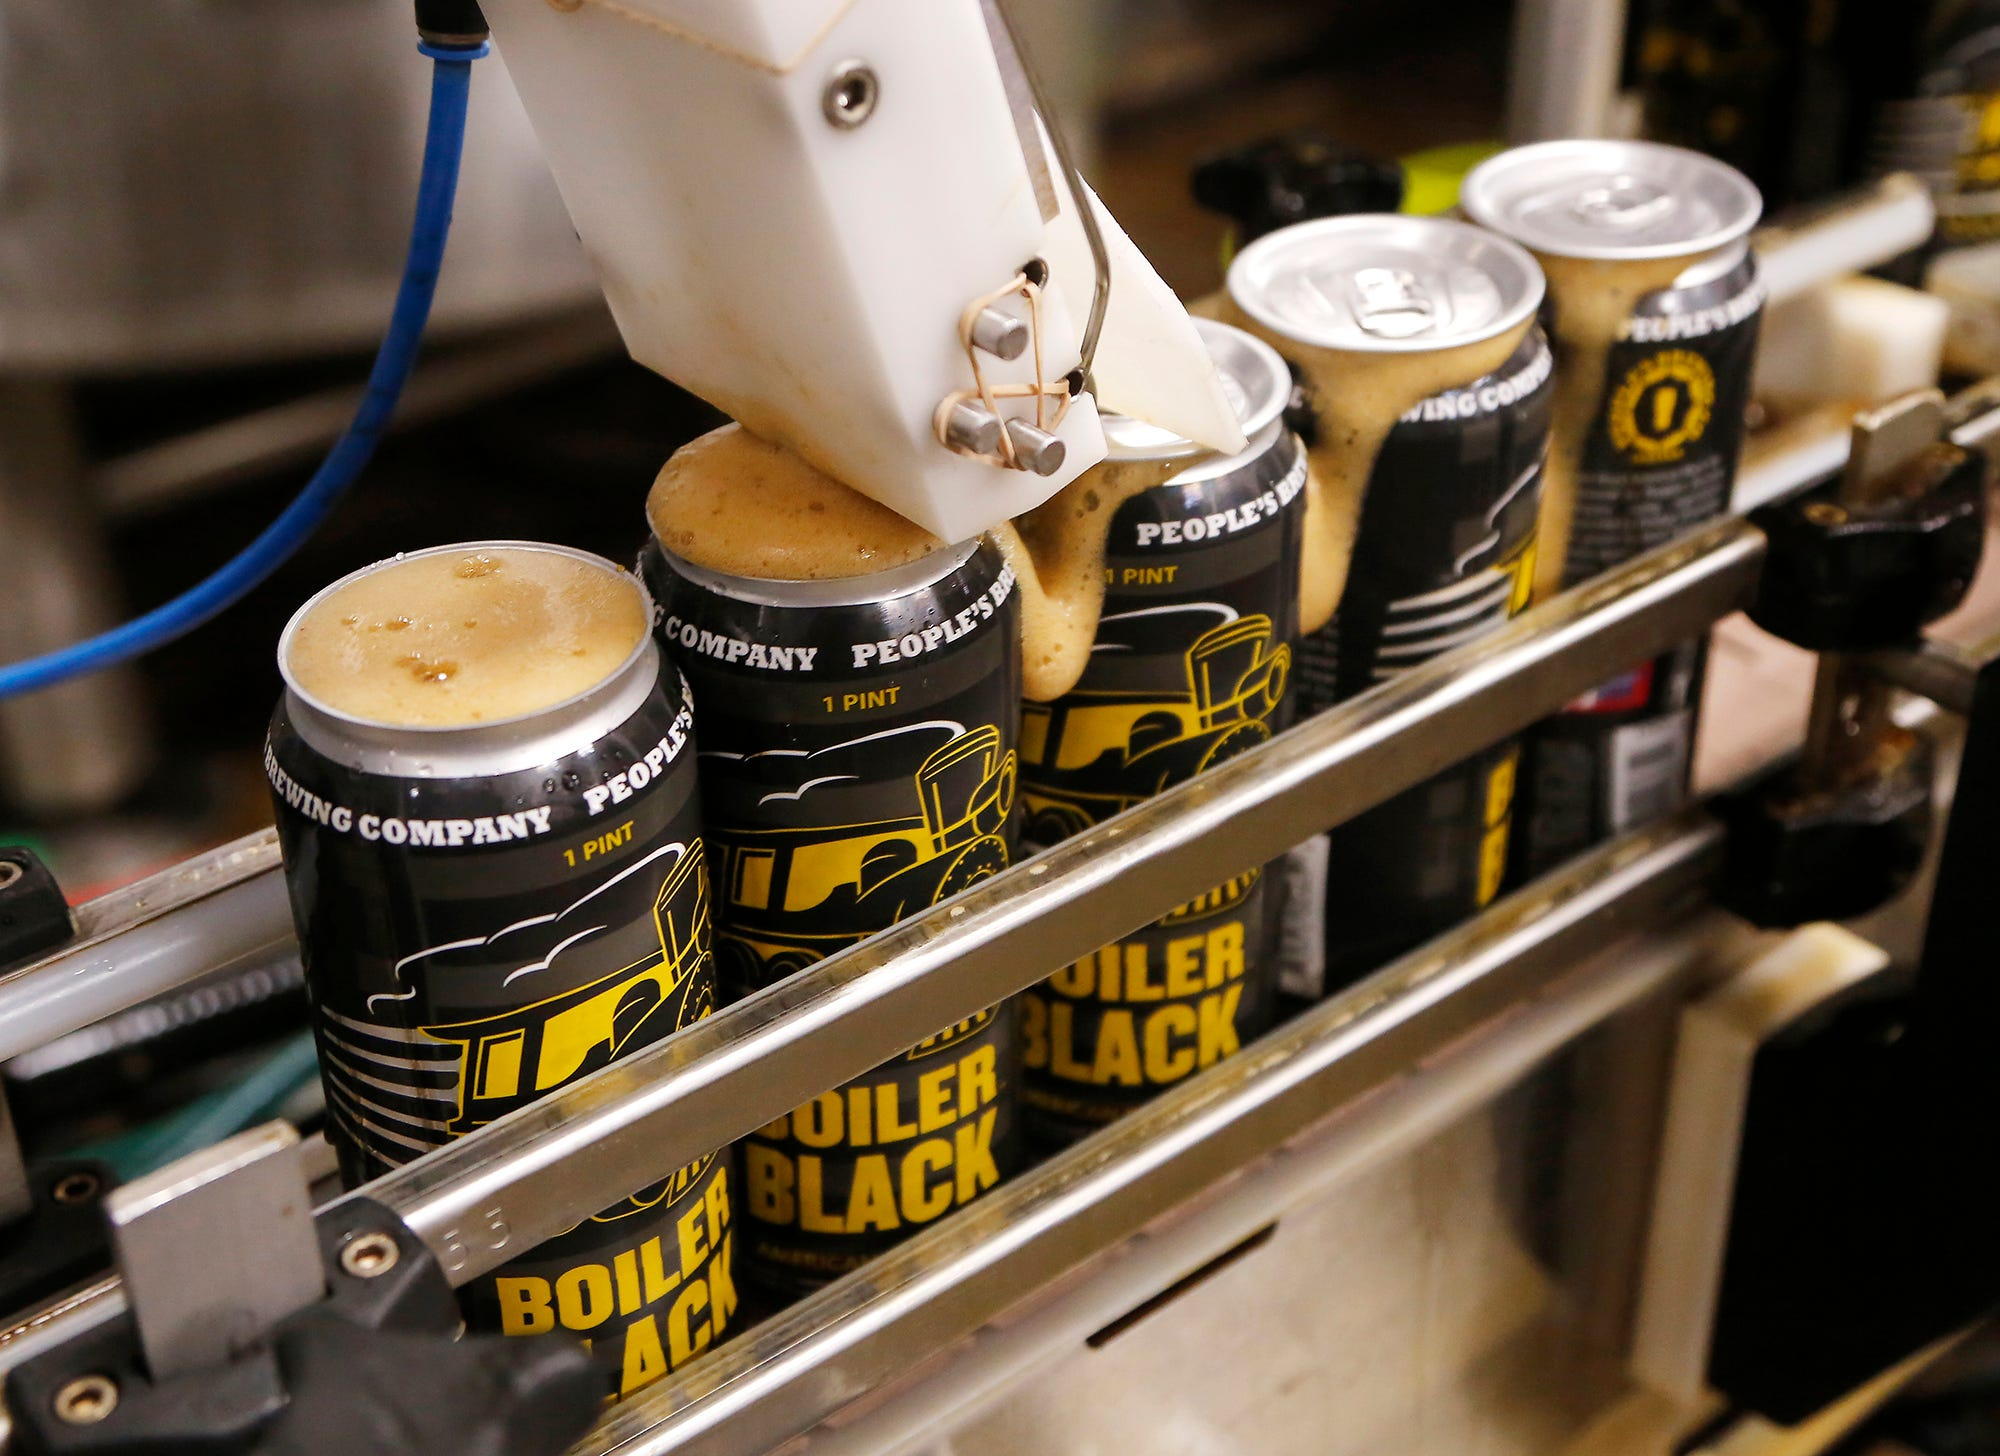 Boiler Black American Black Ale rolls off the canning line Wednesday, September 19, 2018, at People's Brewing Company, 2006 N. 9th Street in Lafayette. Boiler Black is Purdue University's second sanctioned signature beer produced by People's, following Boiler Gold. Boiler Black is an American style porter and will be available for Purdue's Homecoming this weekend.